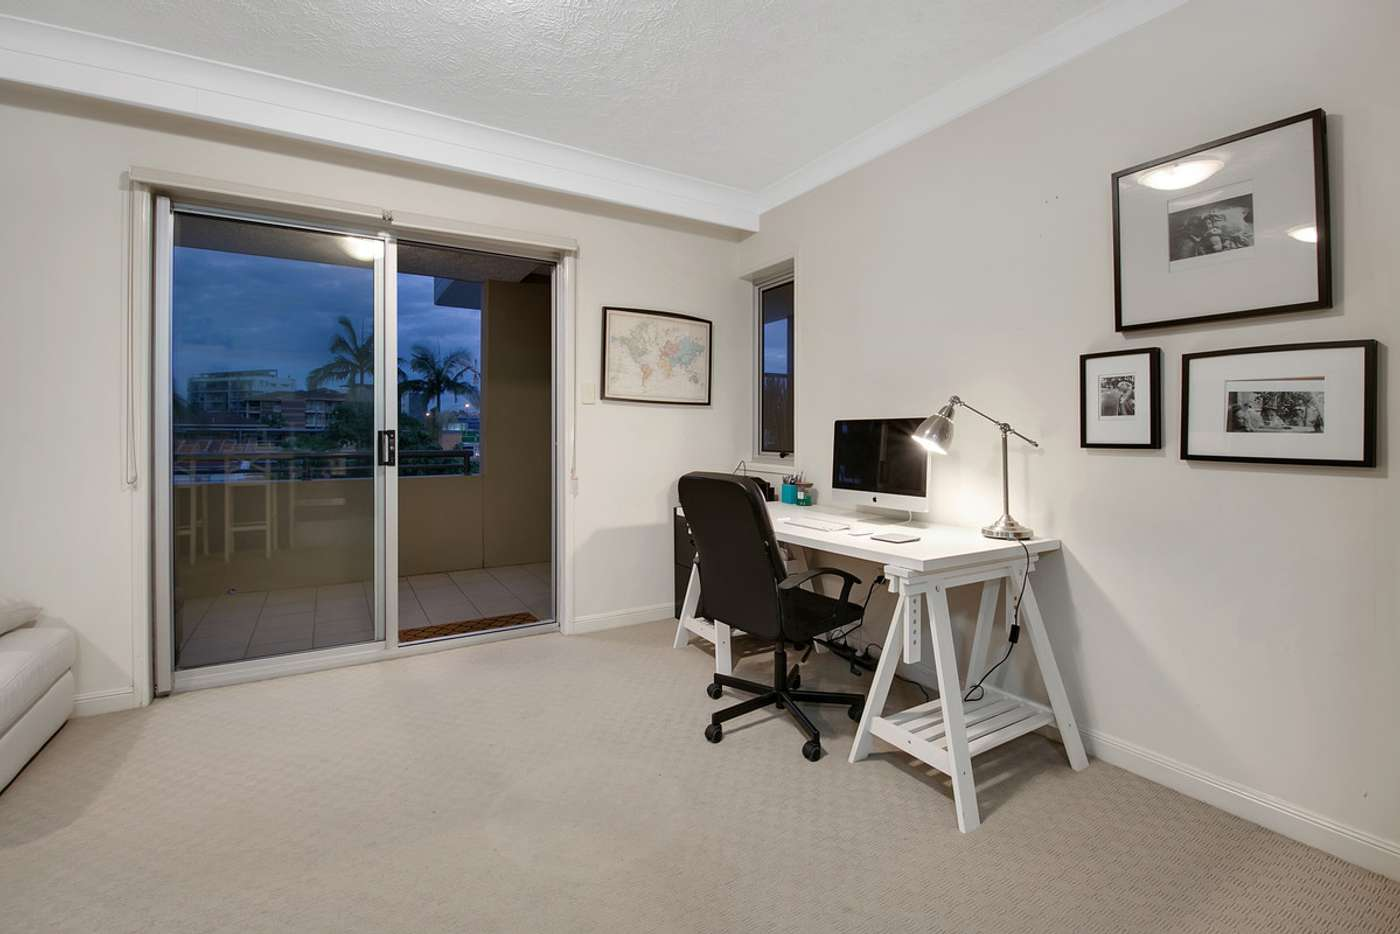 Seventh view of Homely apartment listing, 19 Thorn Street, Kangaroo Point QLD 4169